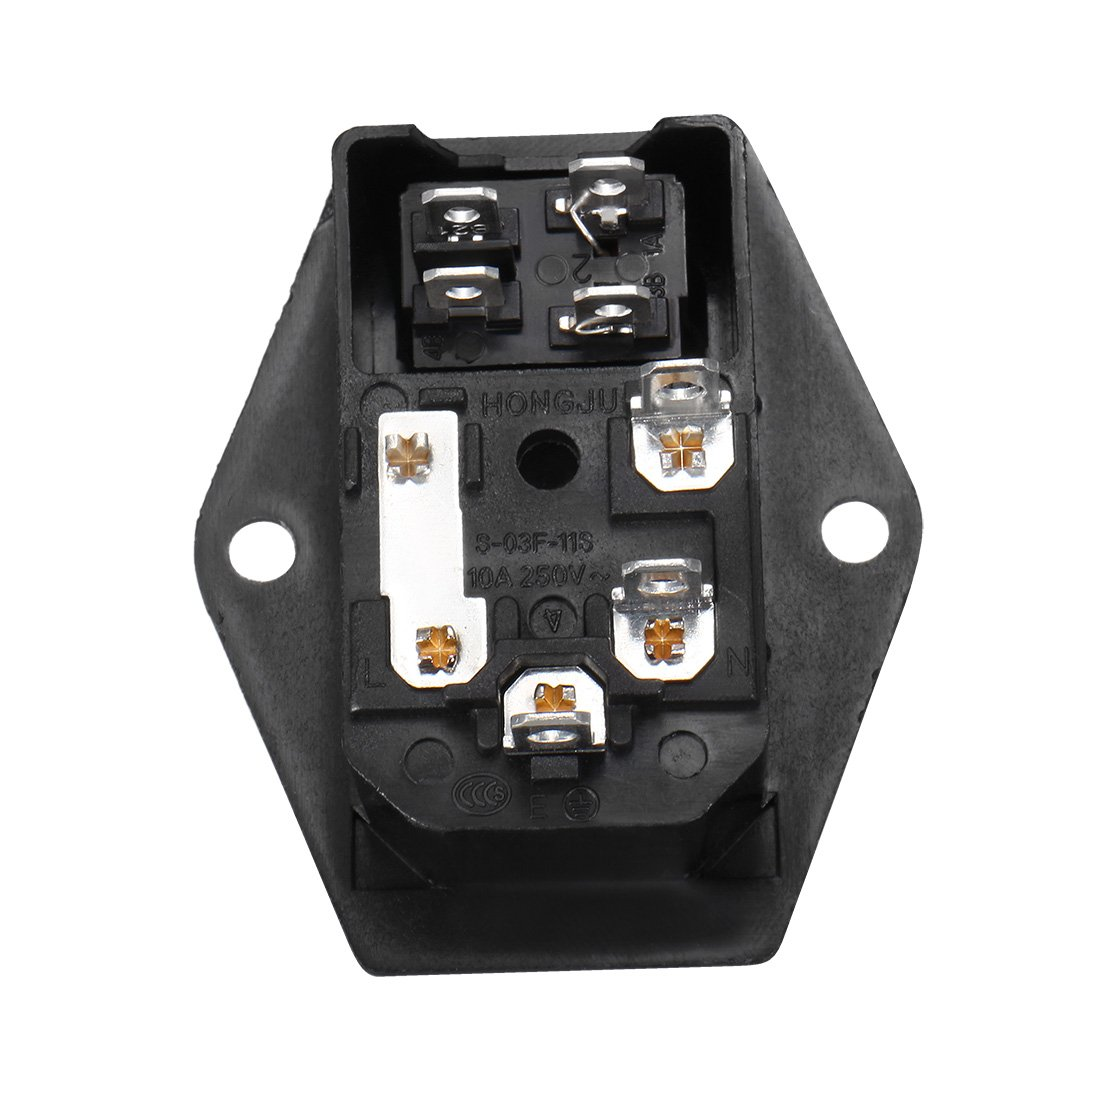 Uxcell Iec 320 C14 Inlet Male Power Supply Connector With Rocker Amazoncom Module Plug Fuse Switch Socket 10a 250v 3 And Holder